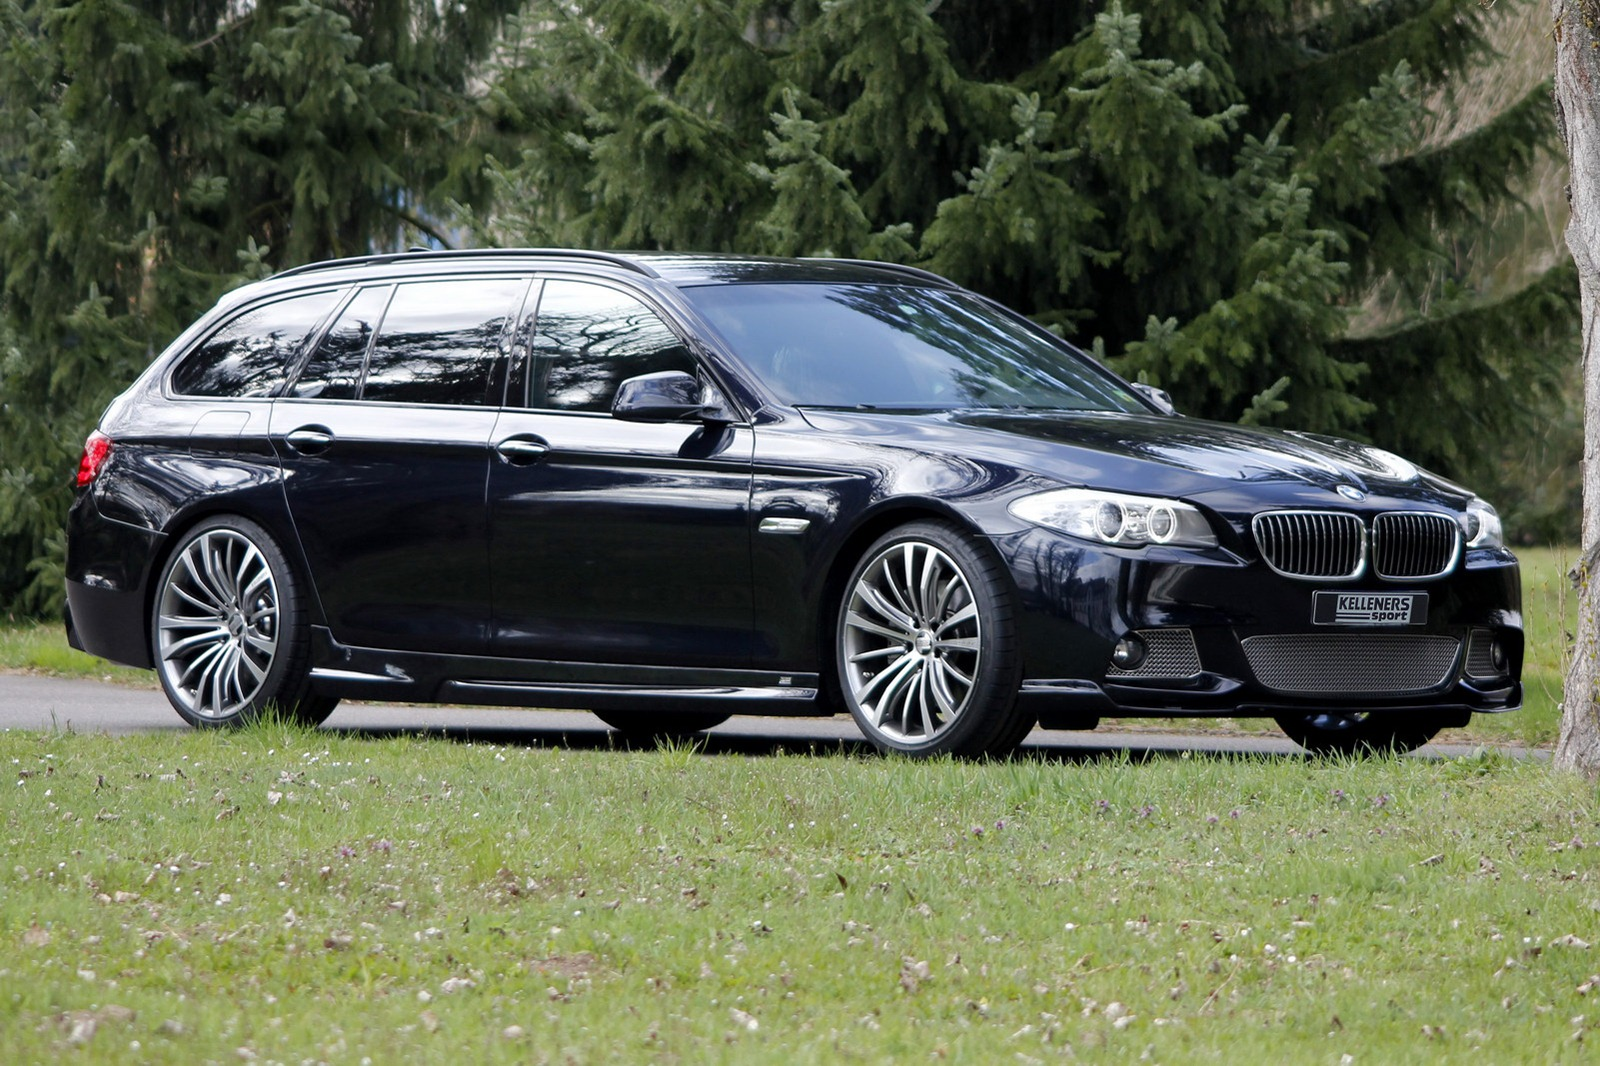 BMW 5 Series Touring by Kelleners Sport